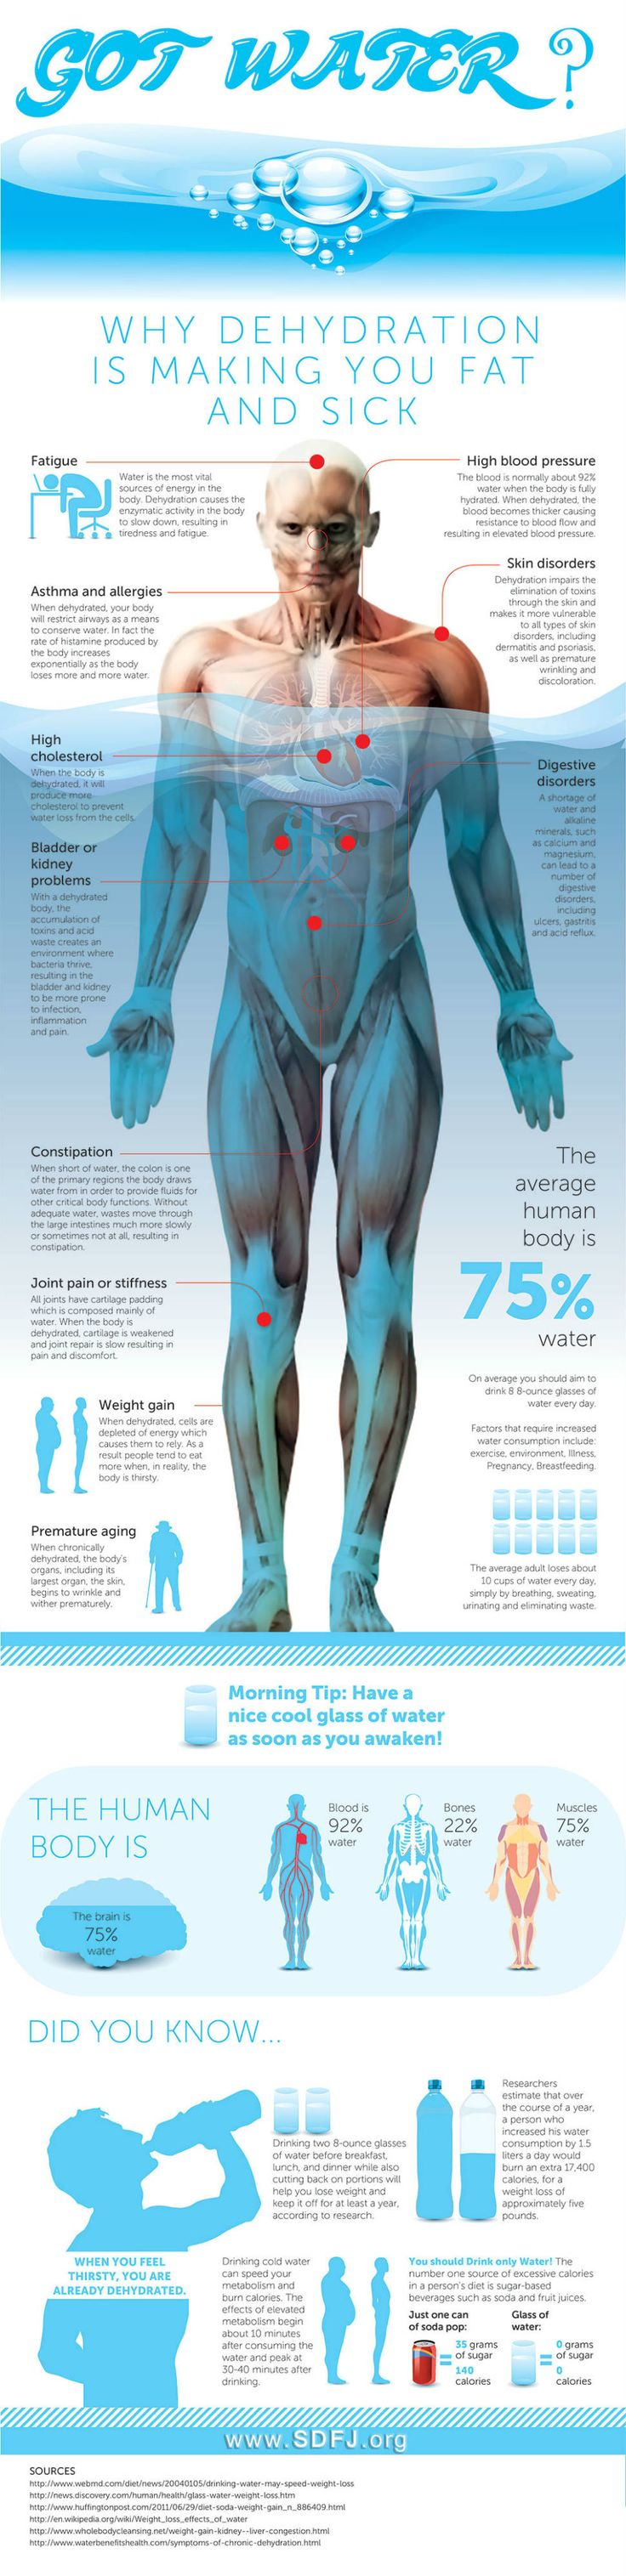 Did you know that 60-75% of the human body consists of water? Only the slightest change in that level can cause #dehydration and problems for human health.  keeping hydrated helps redox signaling molecules function better.